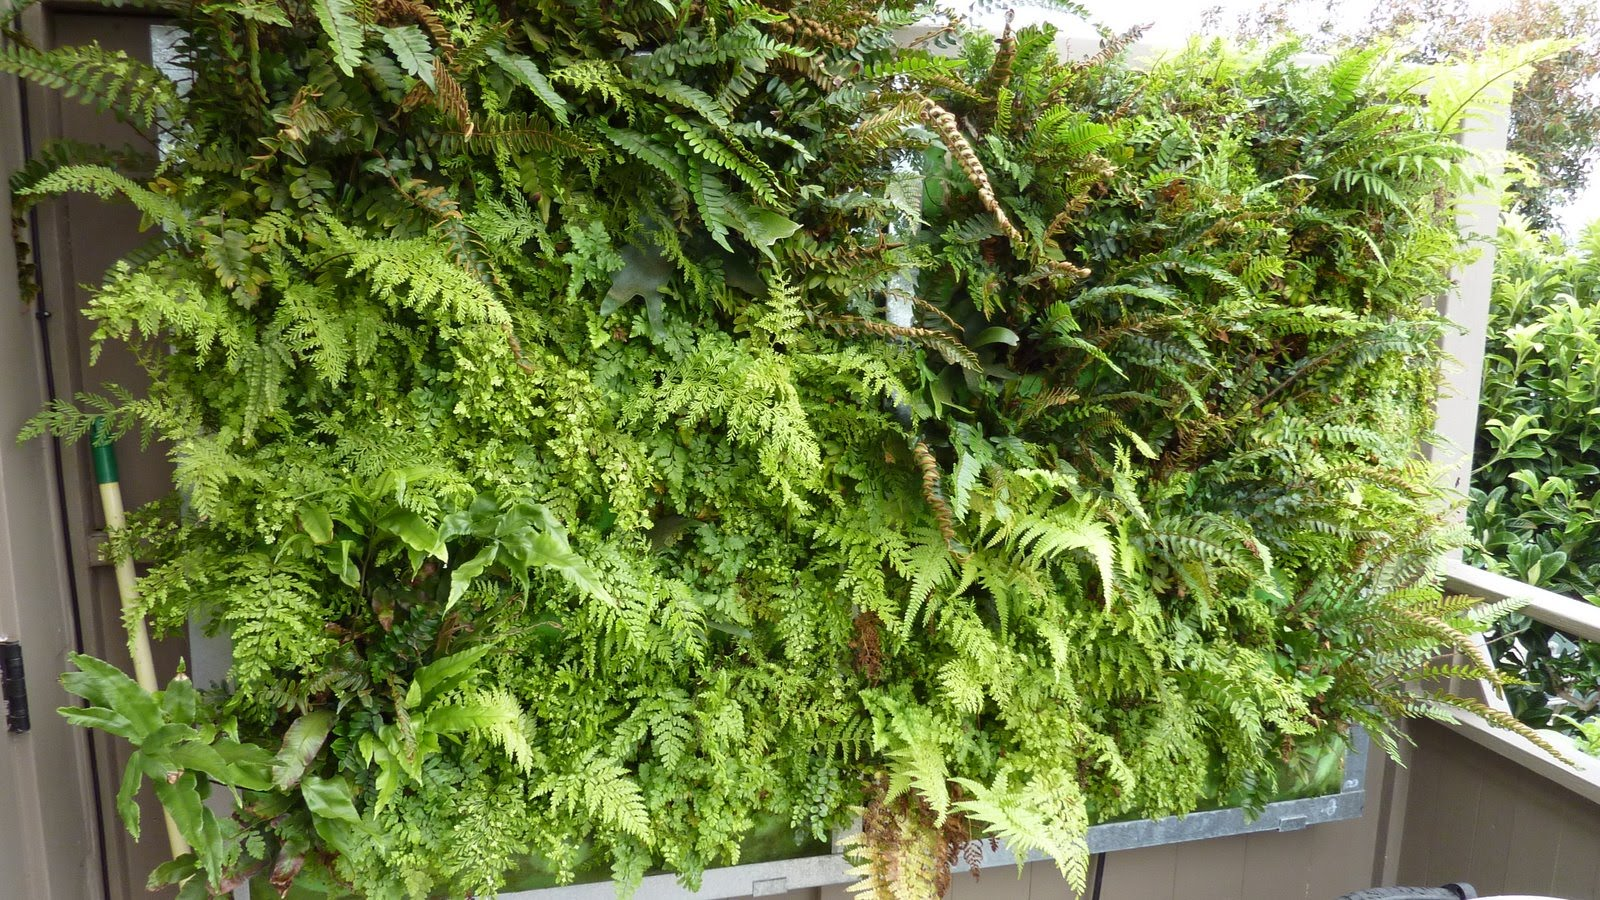 plants on walls vertical garden systems fern wall. Black Bedroom Furniture Sets. Home Design Ideas